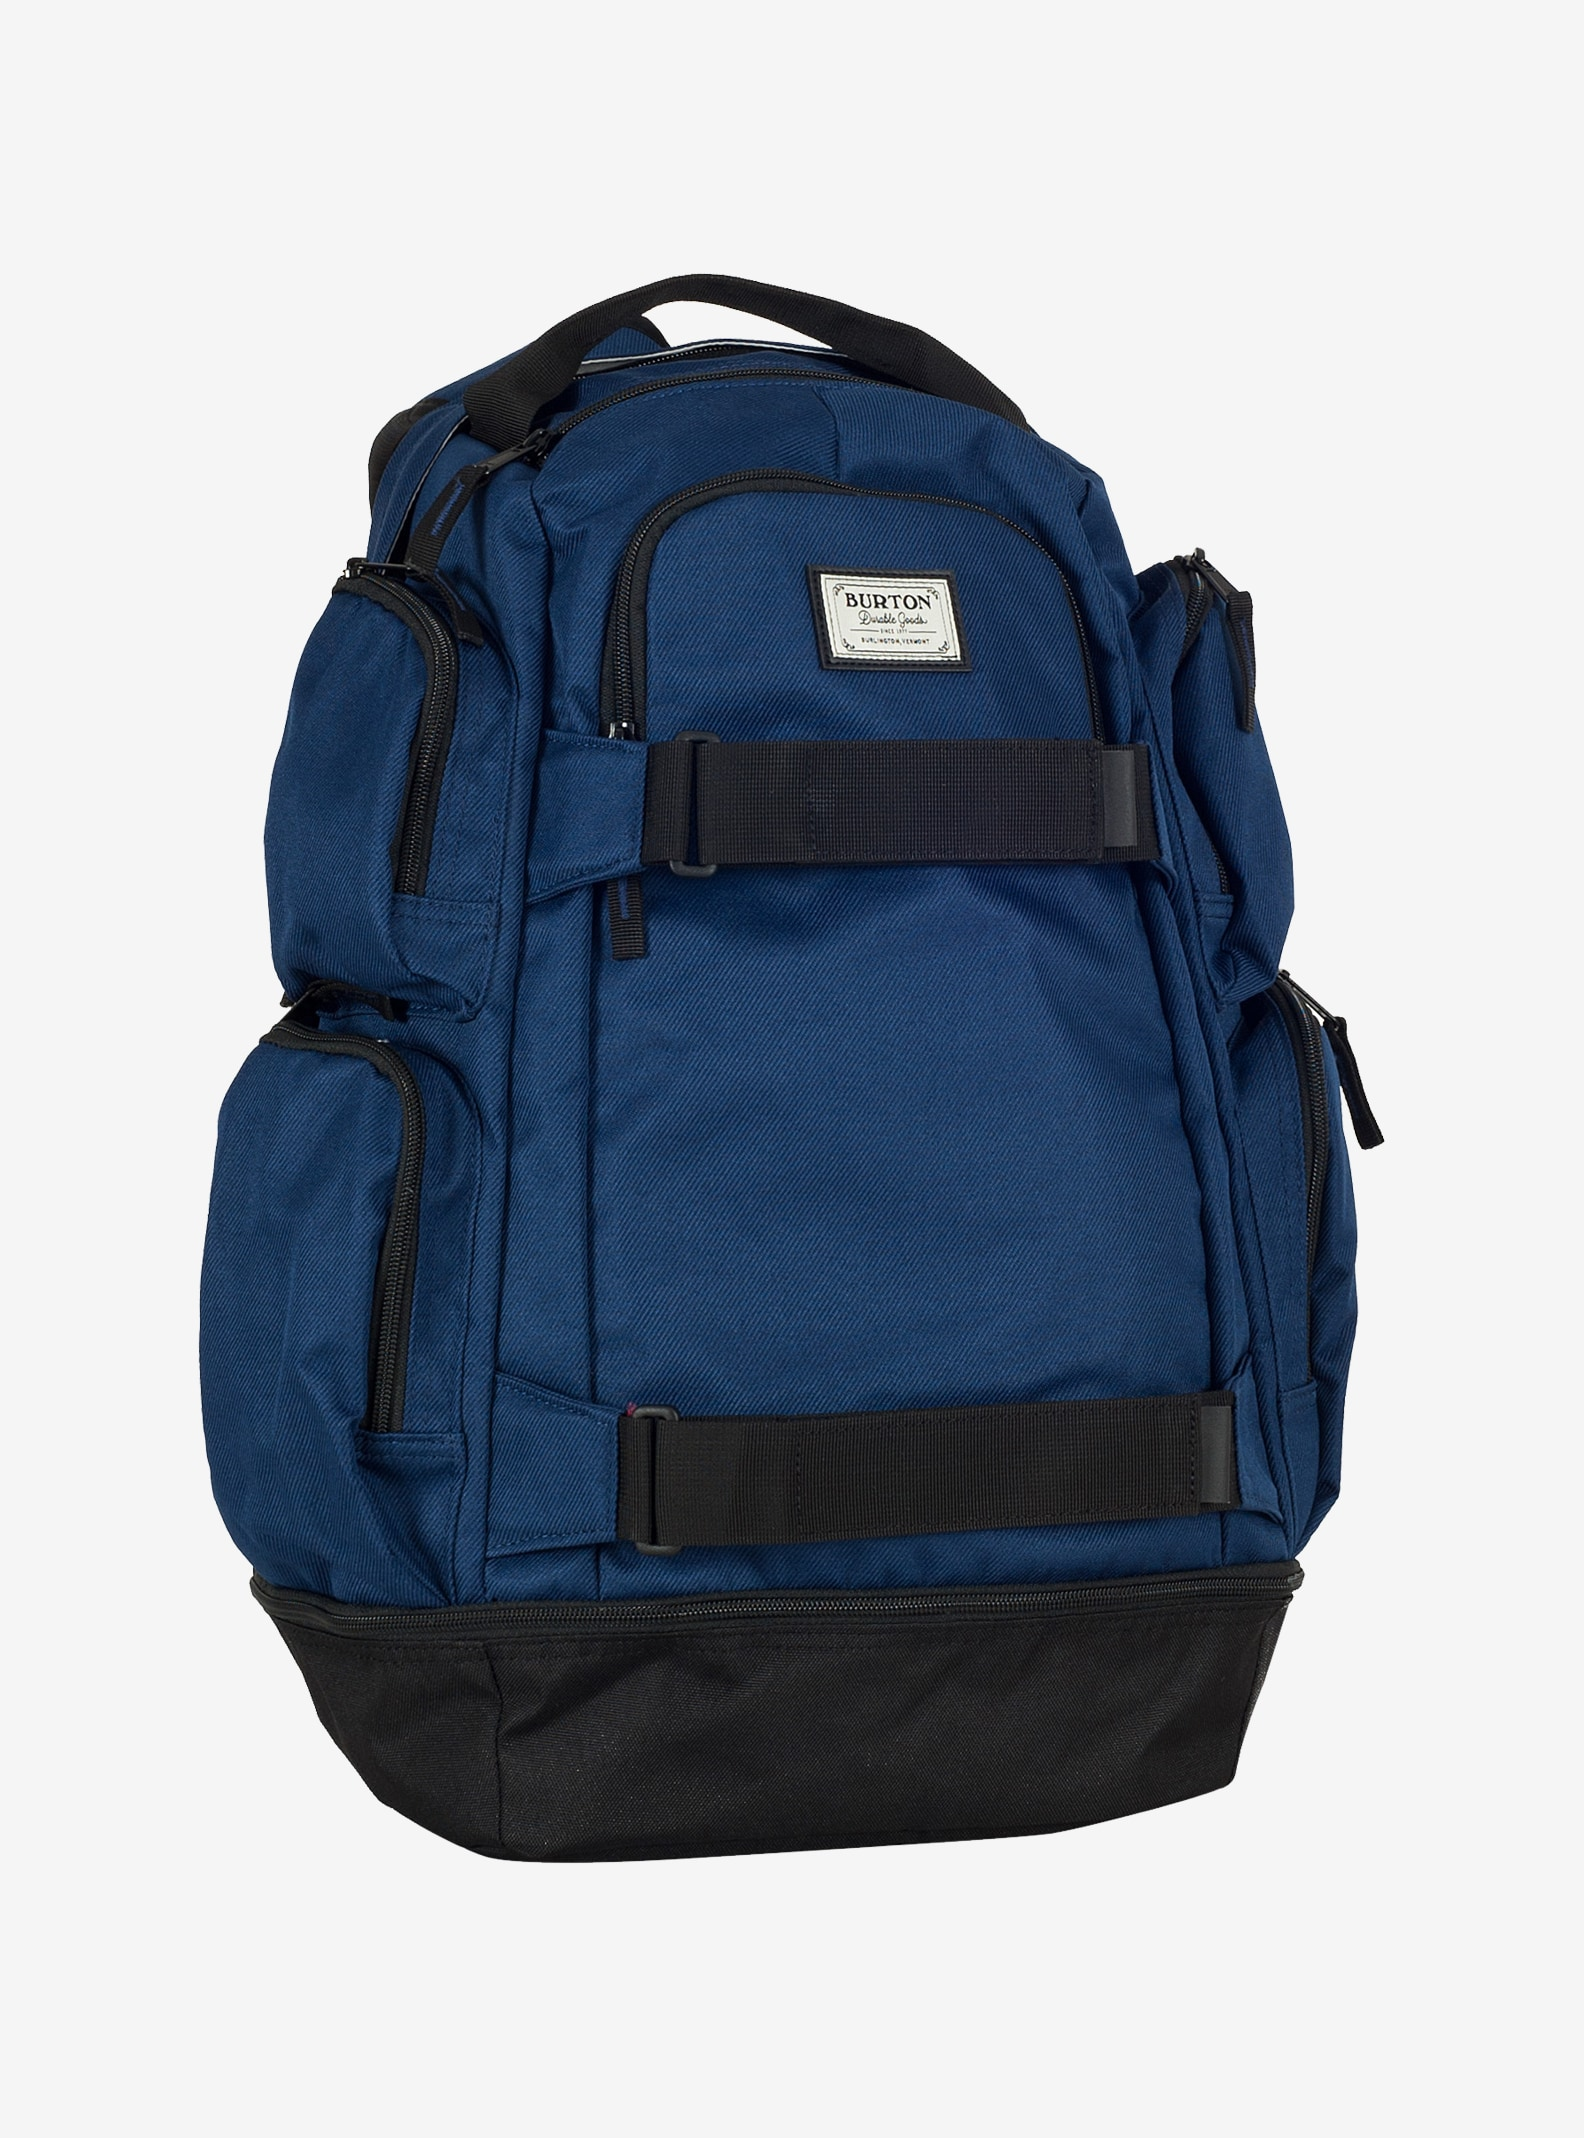 Burton Distortion Backpack shown in Medieval Blue Twill